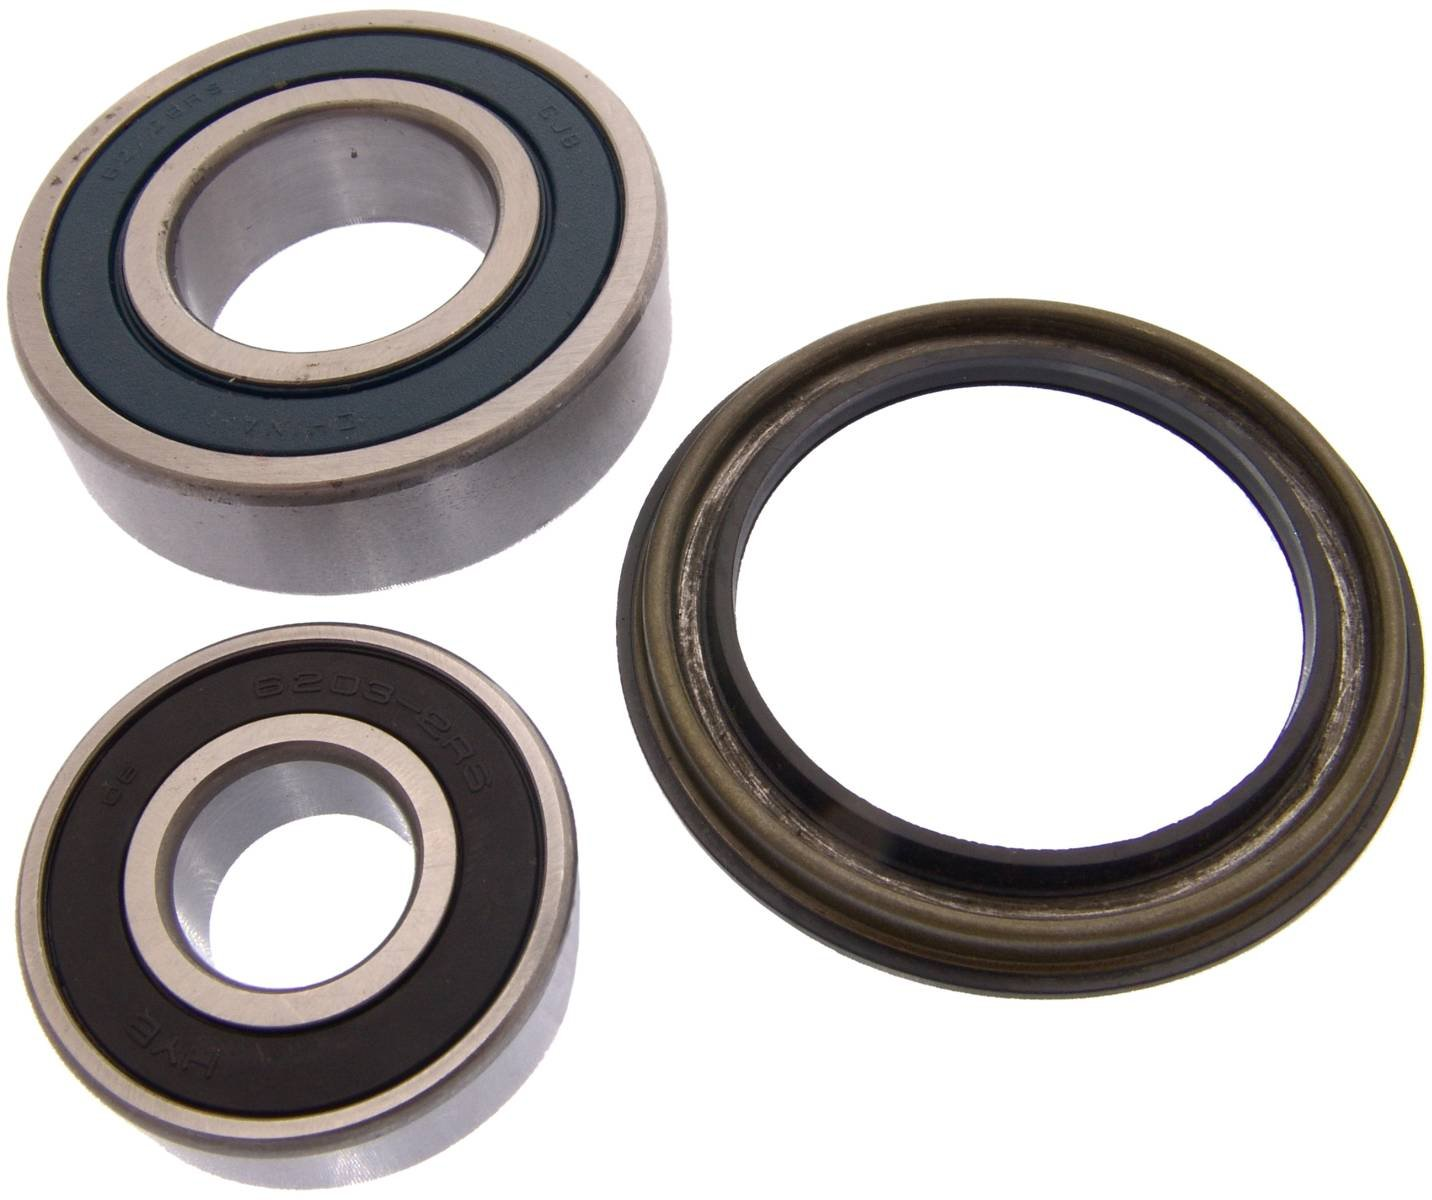 545932J027 - Front Arm Bearing Seal Kit (3 Set) For Nissan - Febest